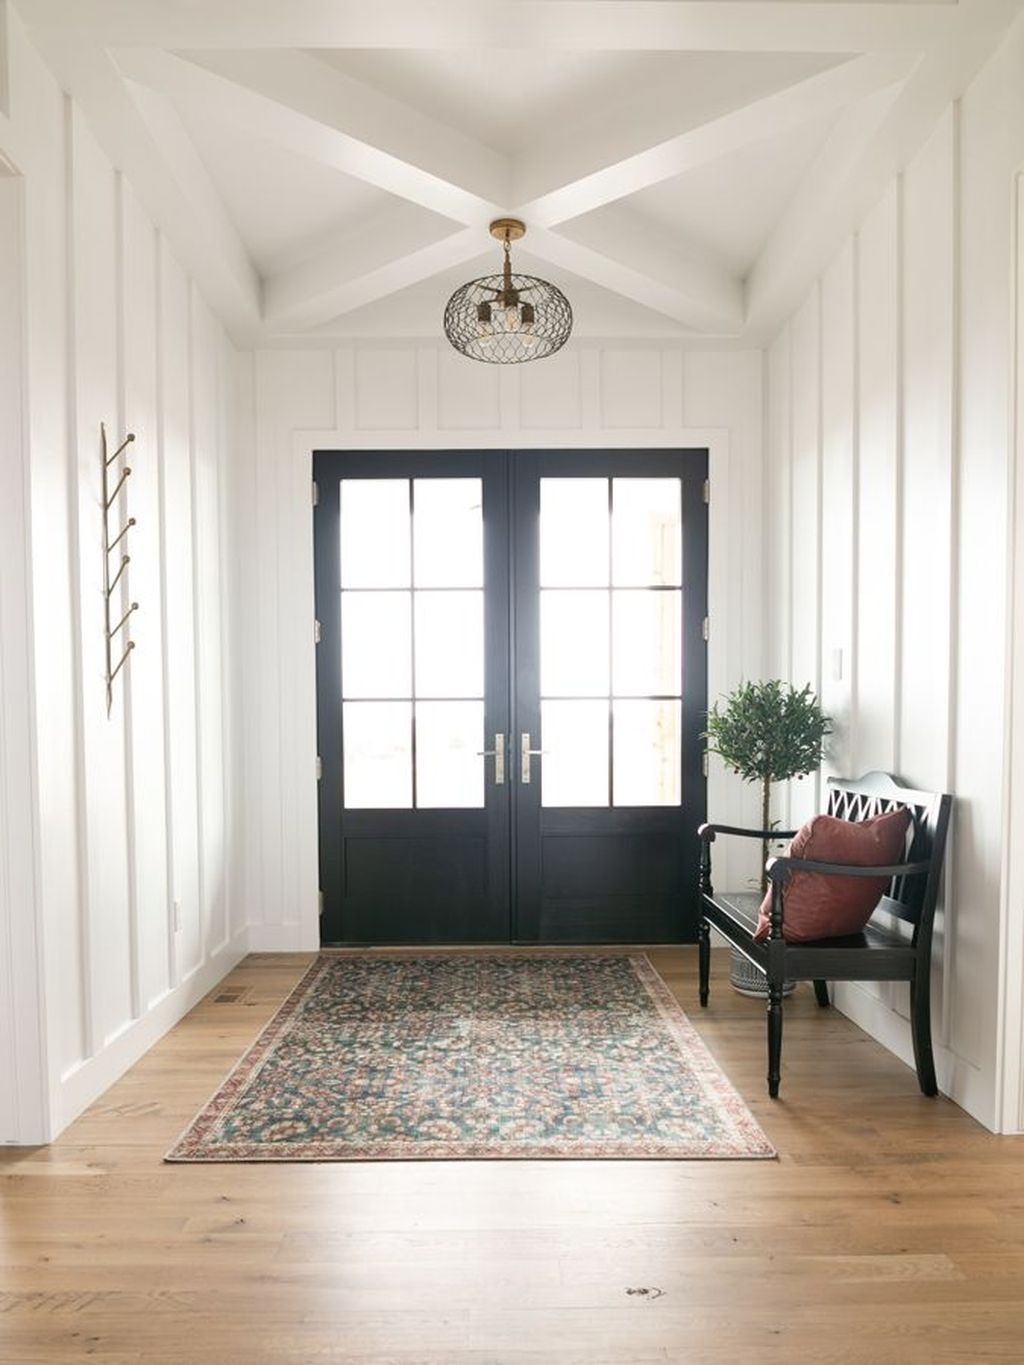 Adorable Home Interior Remodel Design Ideas To Try Asap 18